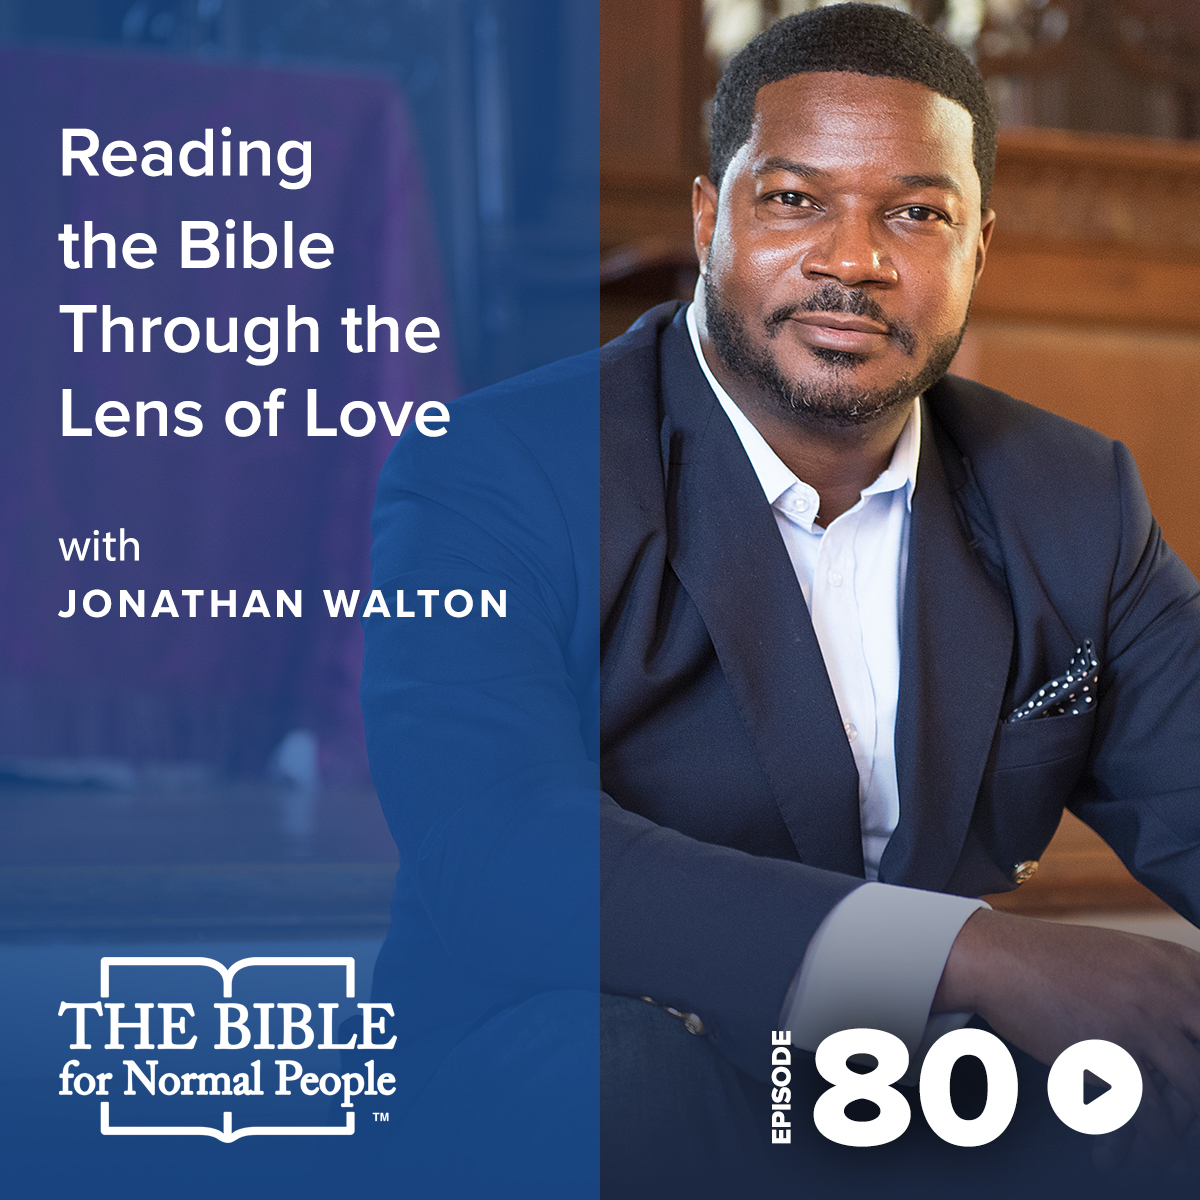 Episode 80: Jonathan Walton - Reading the Bible Through the Lens of Love